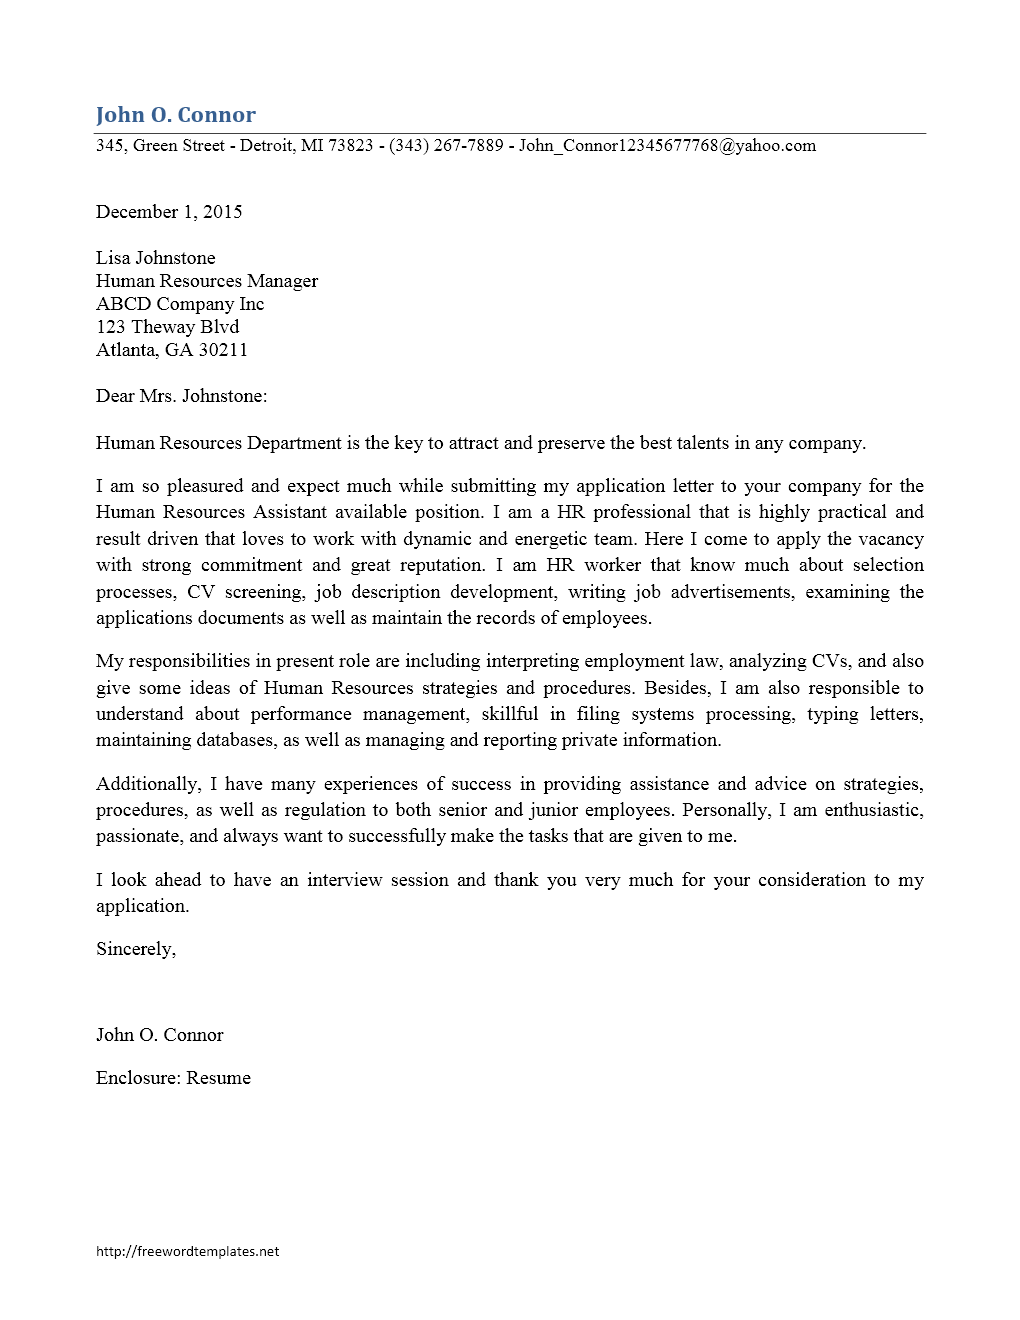 human resources staff cover letter